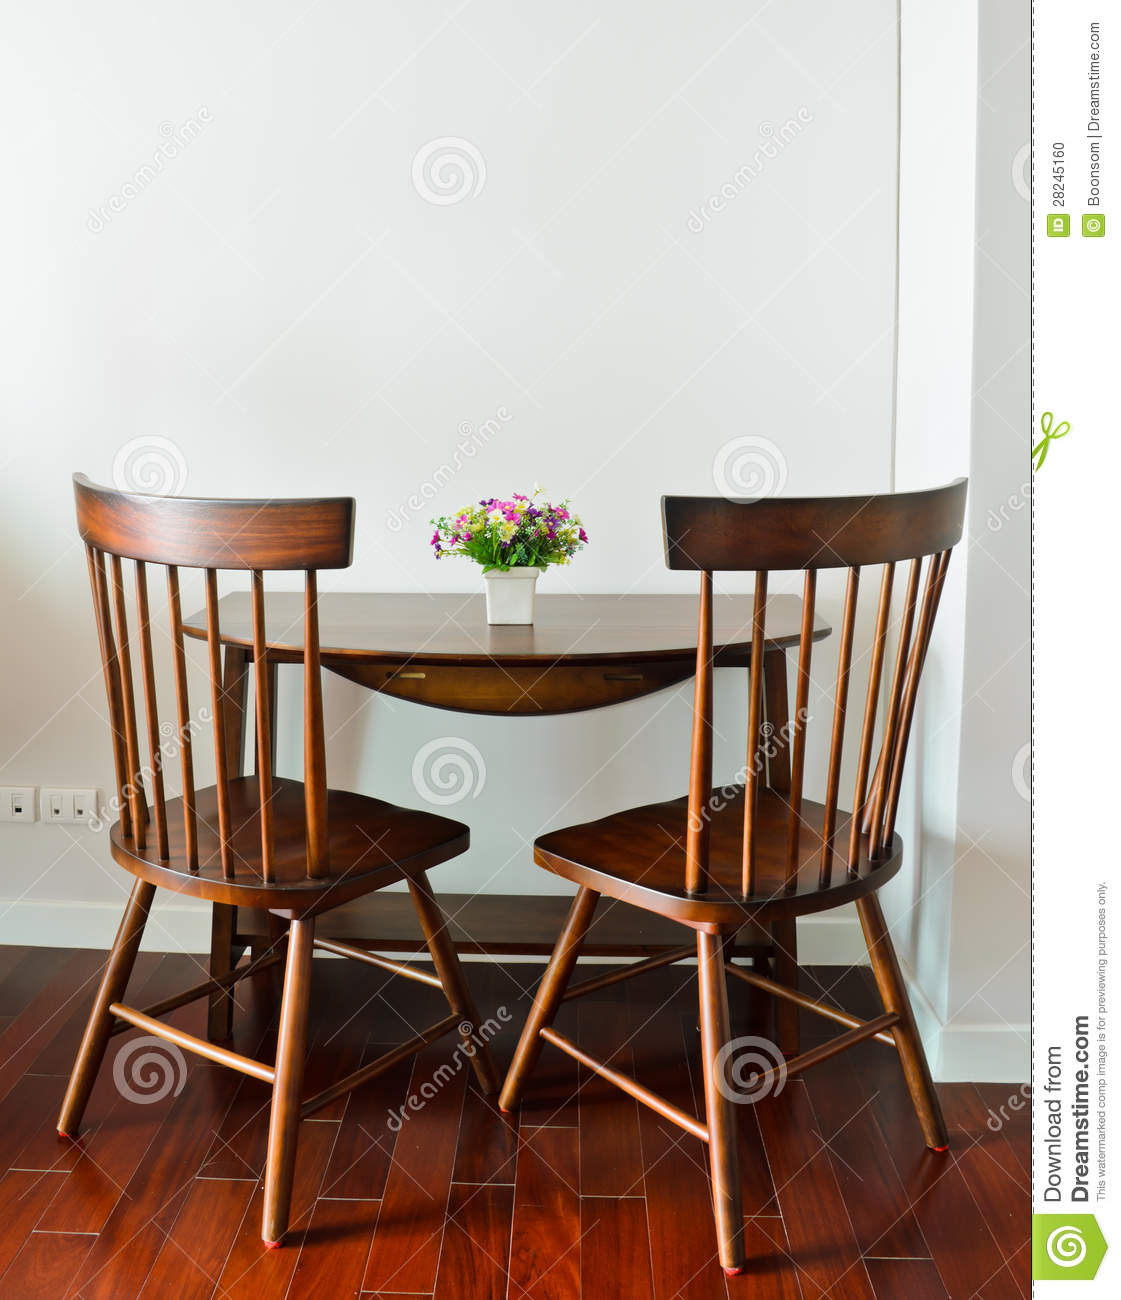 Petite table de salle manger photo stock image 28245160 for Petite table a manger